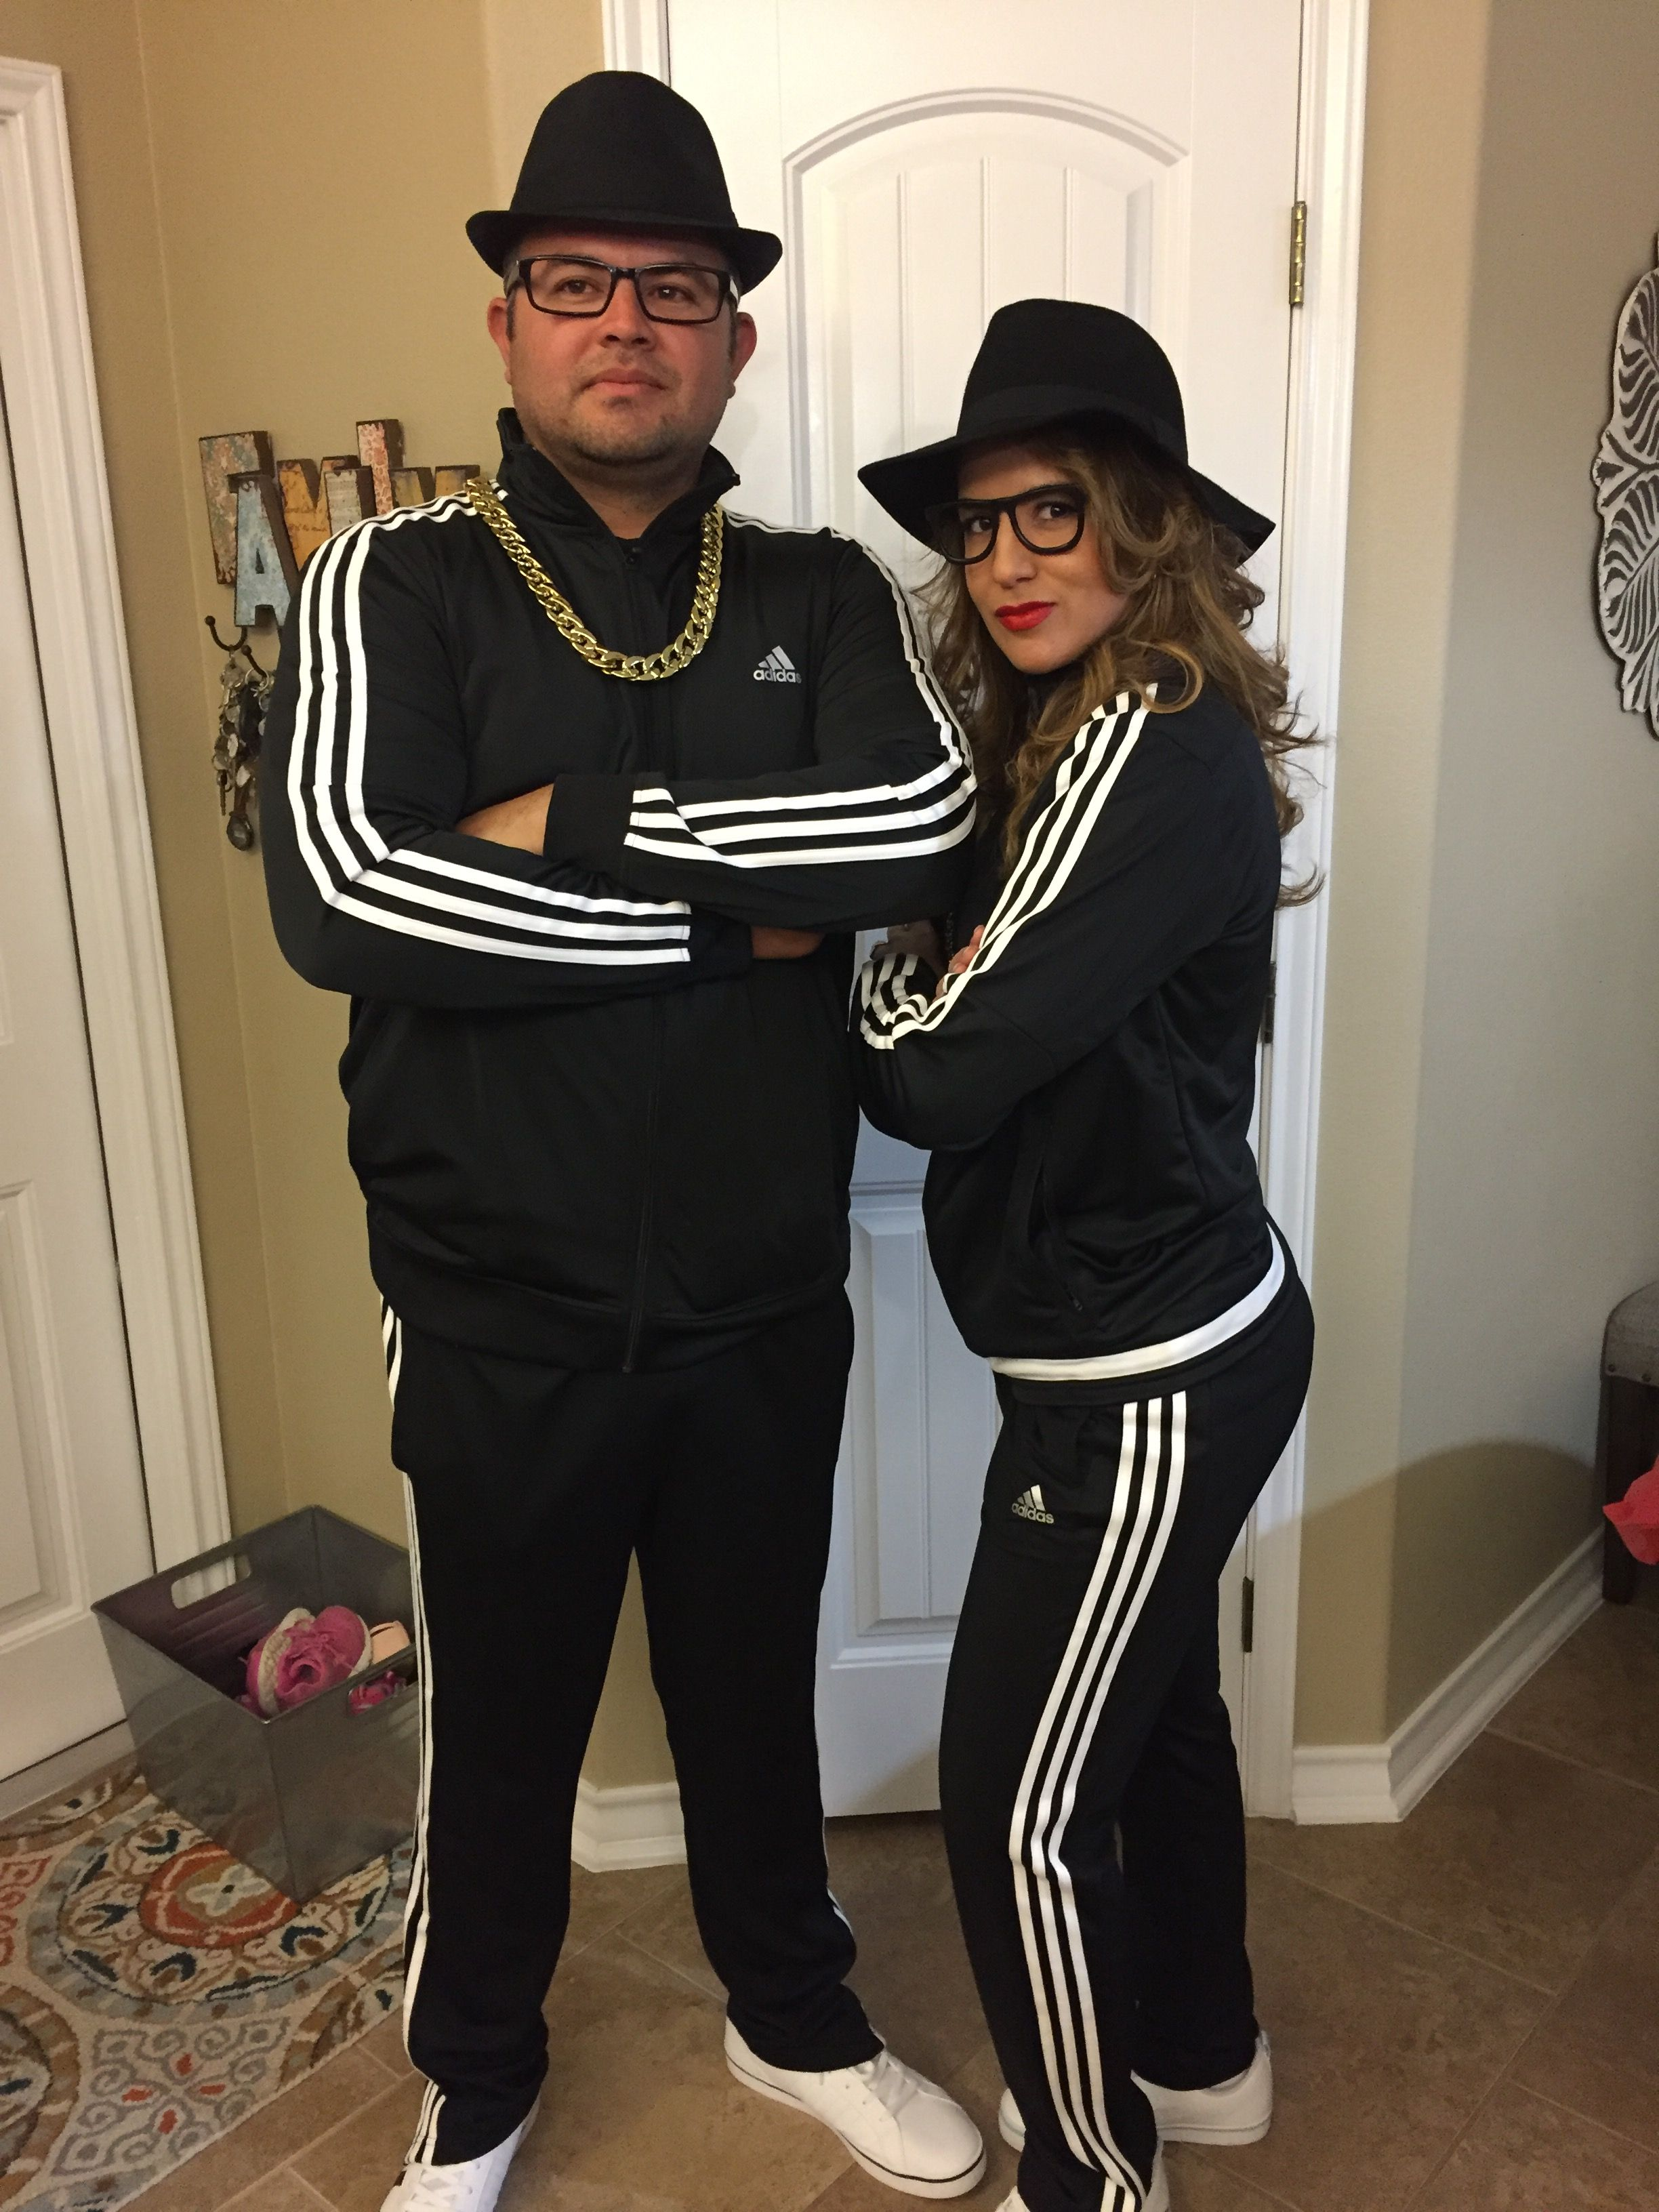 80s theme party. Run DMC  sc 1 st  Pinterest & 80s theme party. Run DMC | Party Planning | Pinterest | 80s theme ...